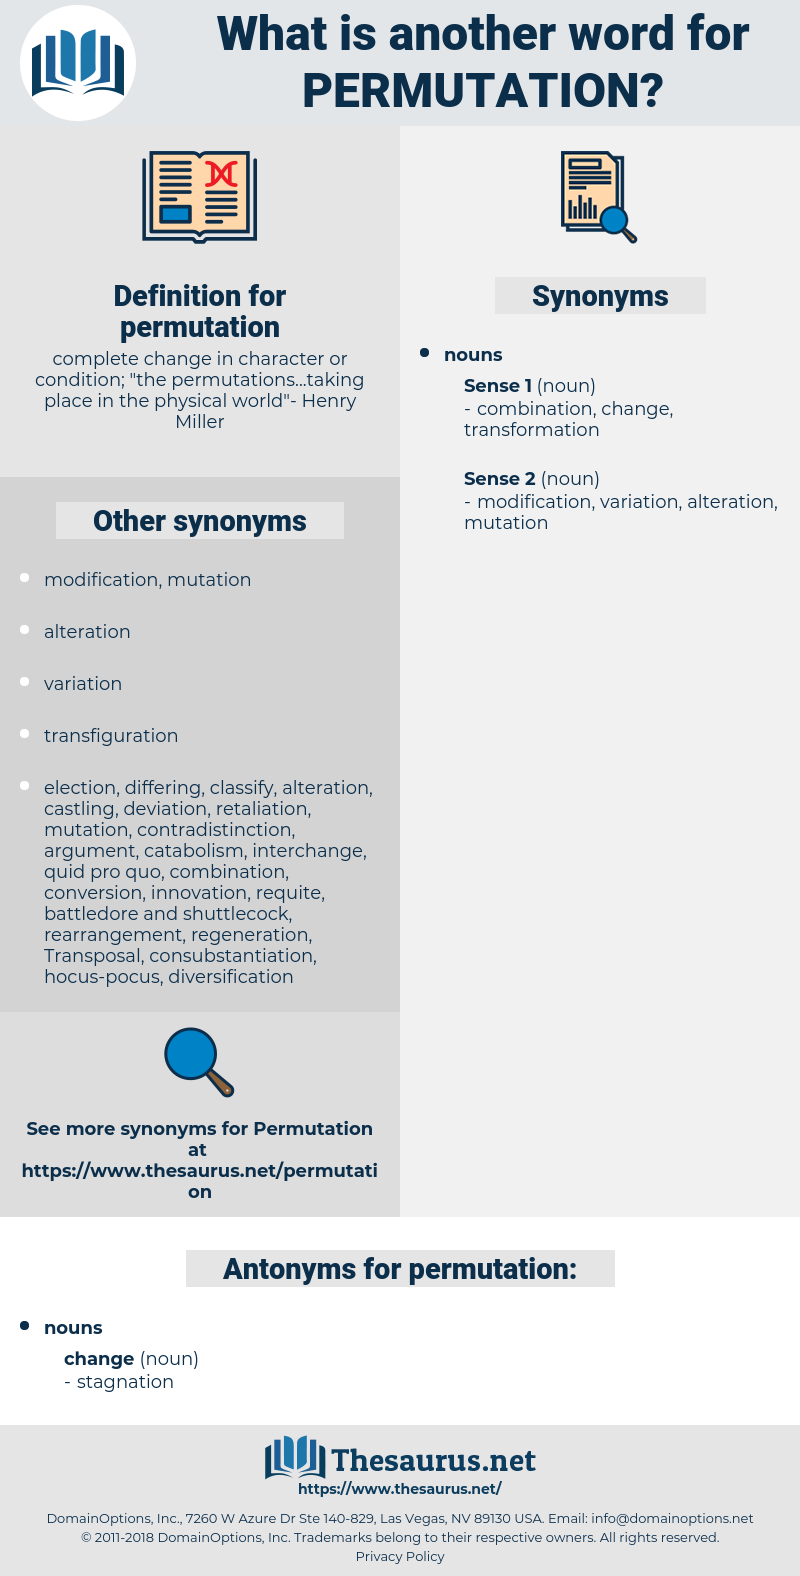 permutation, synonym permutation, another word for permutation, words like permutation, thesaurus permutation